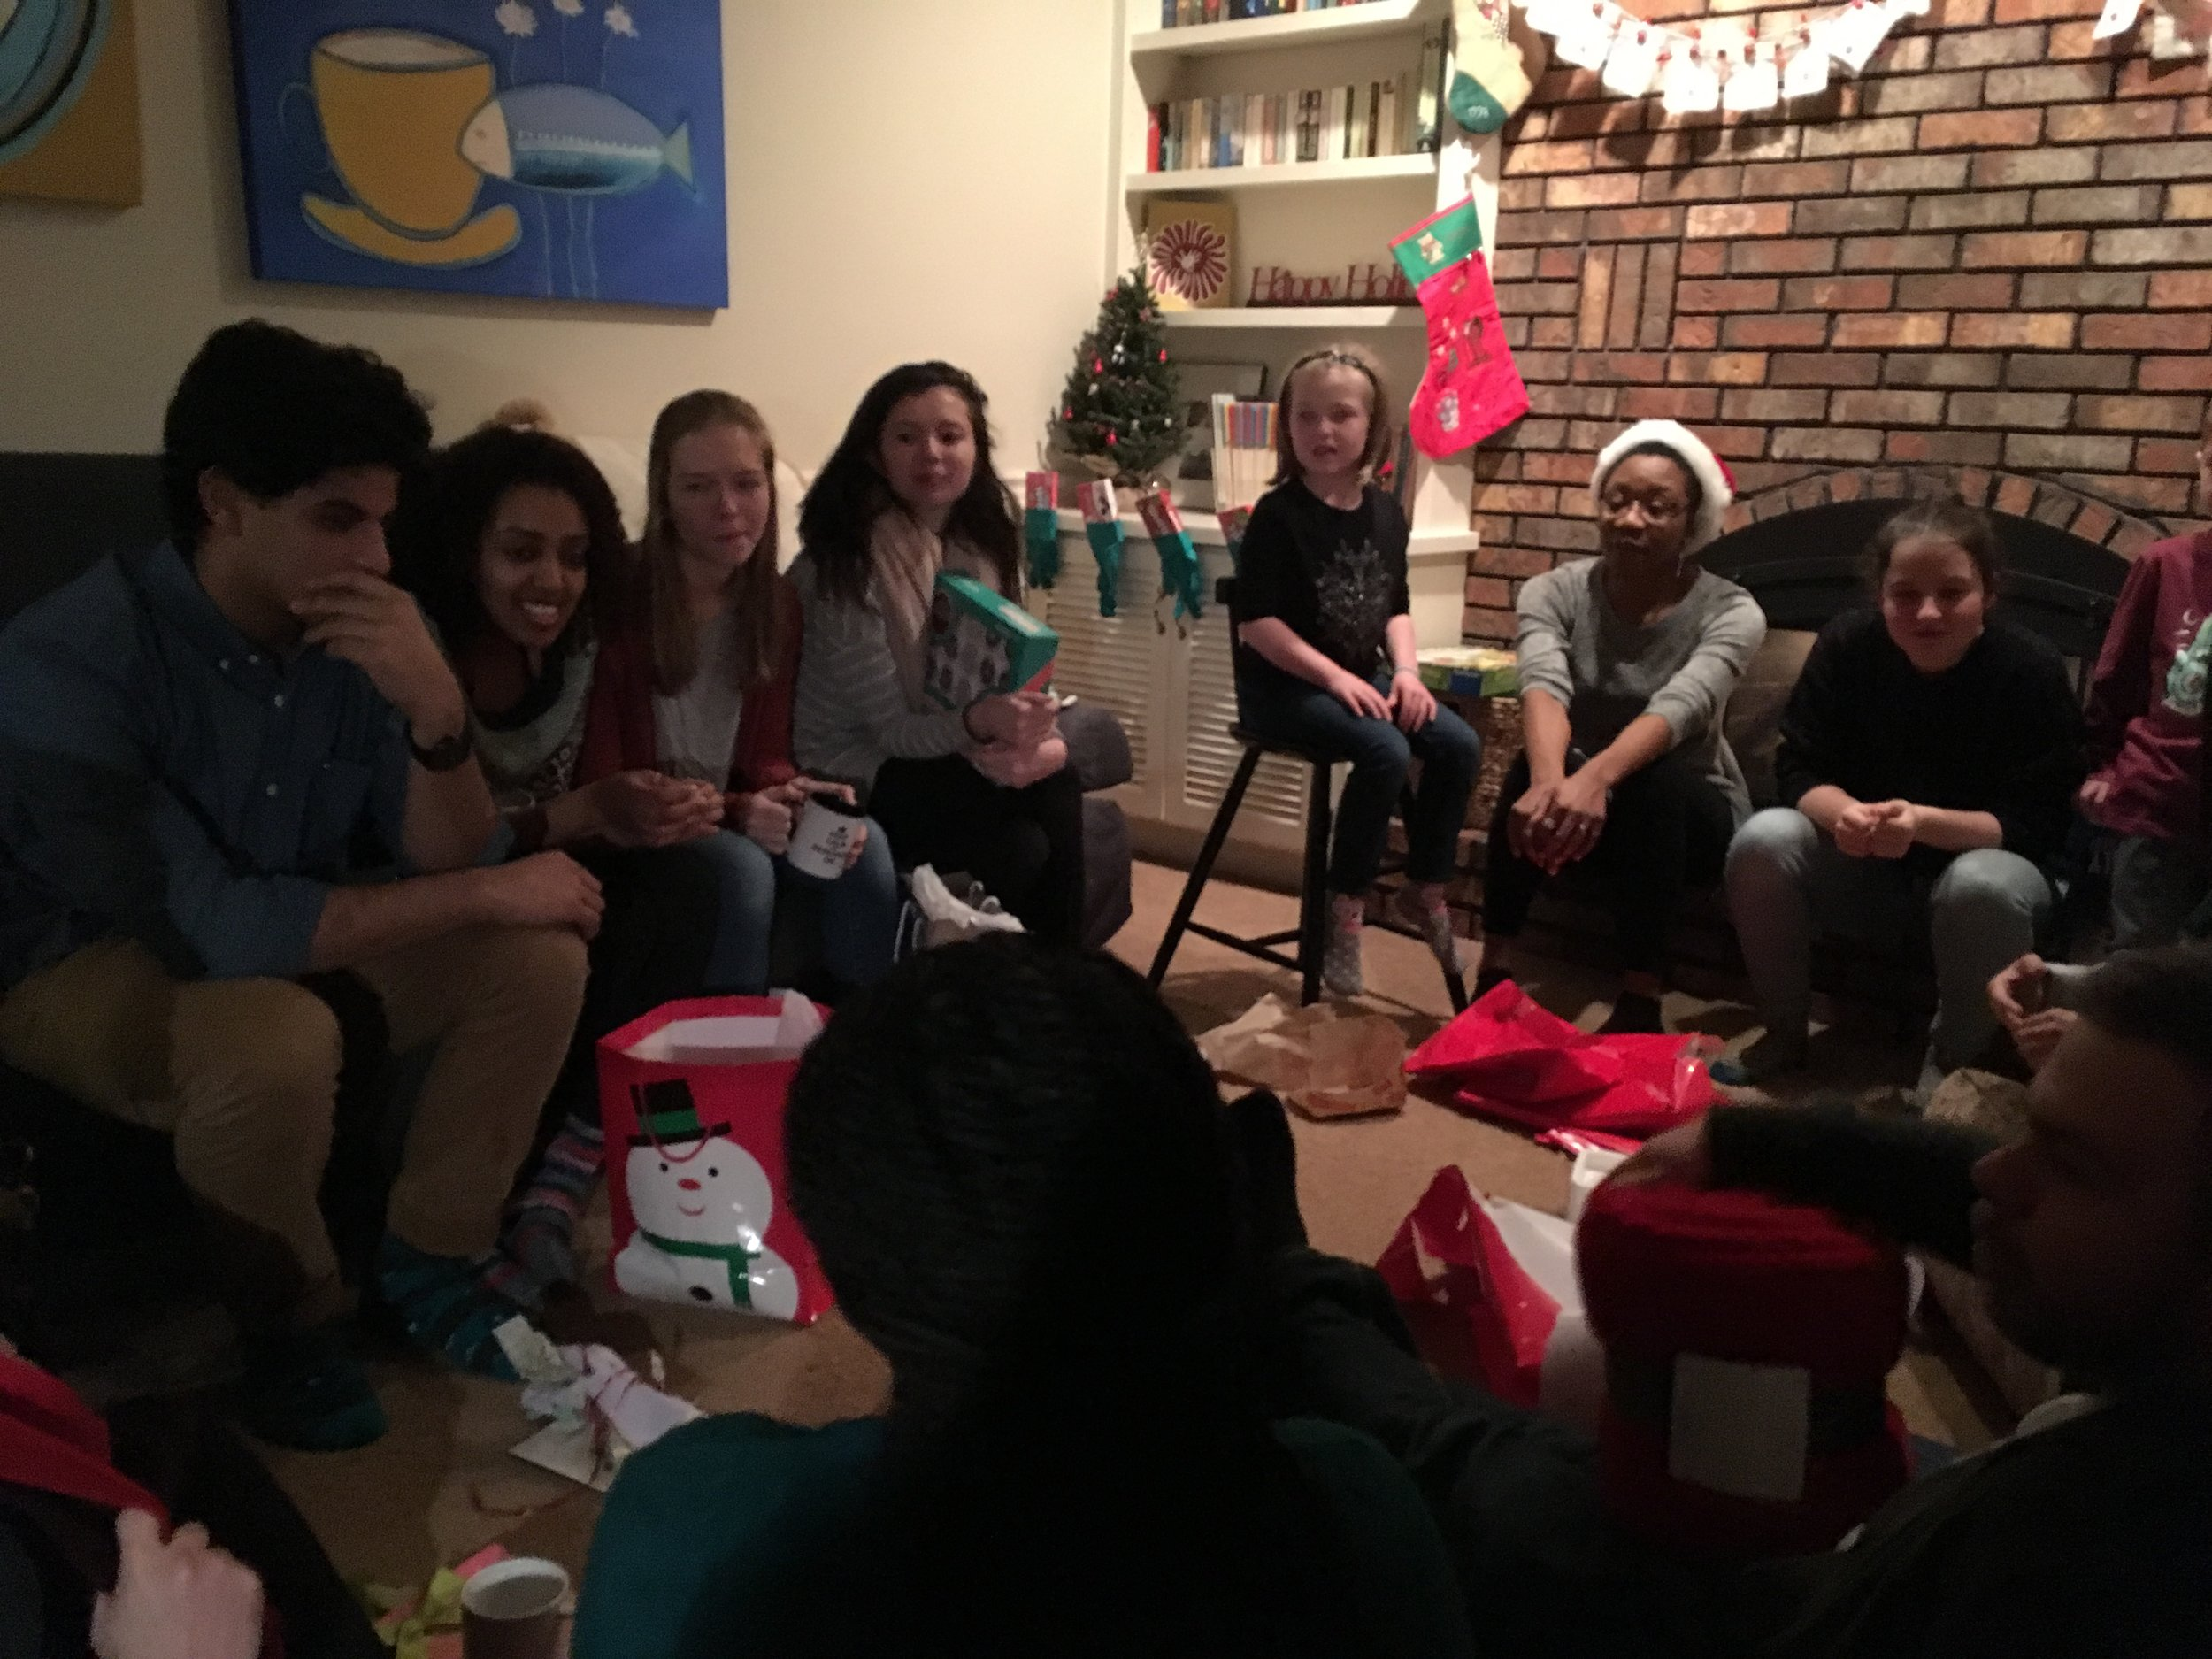 Stealing gift exchange 2018! The year of the mugs.